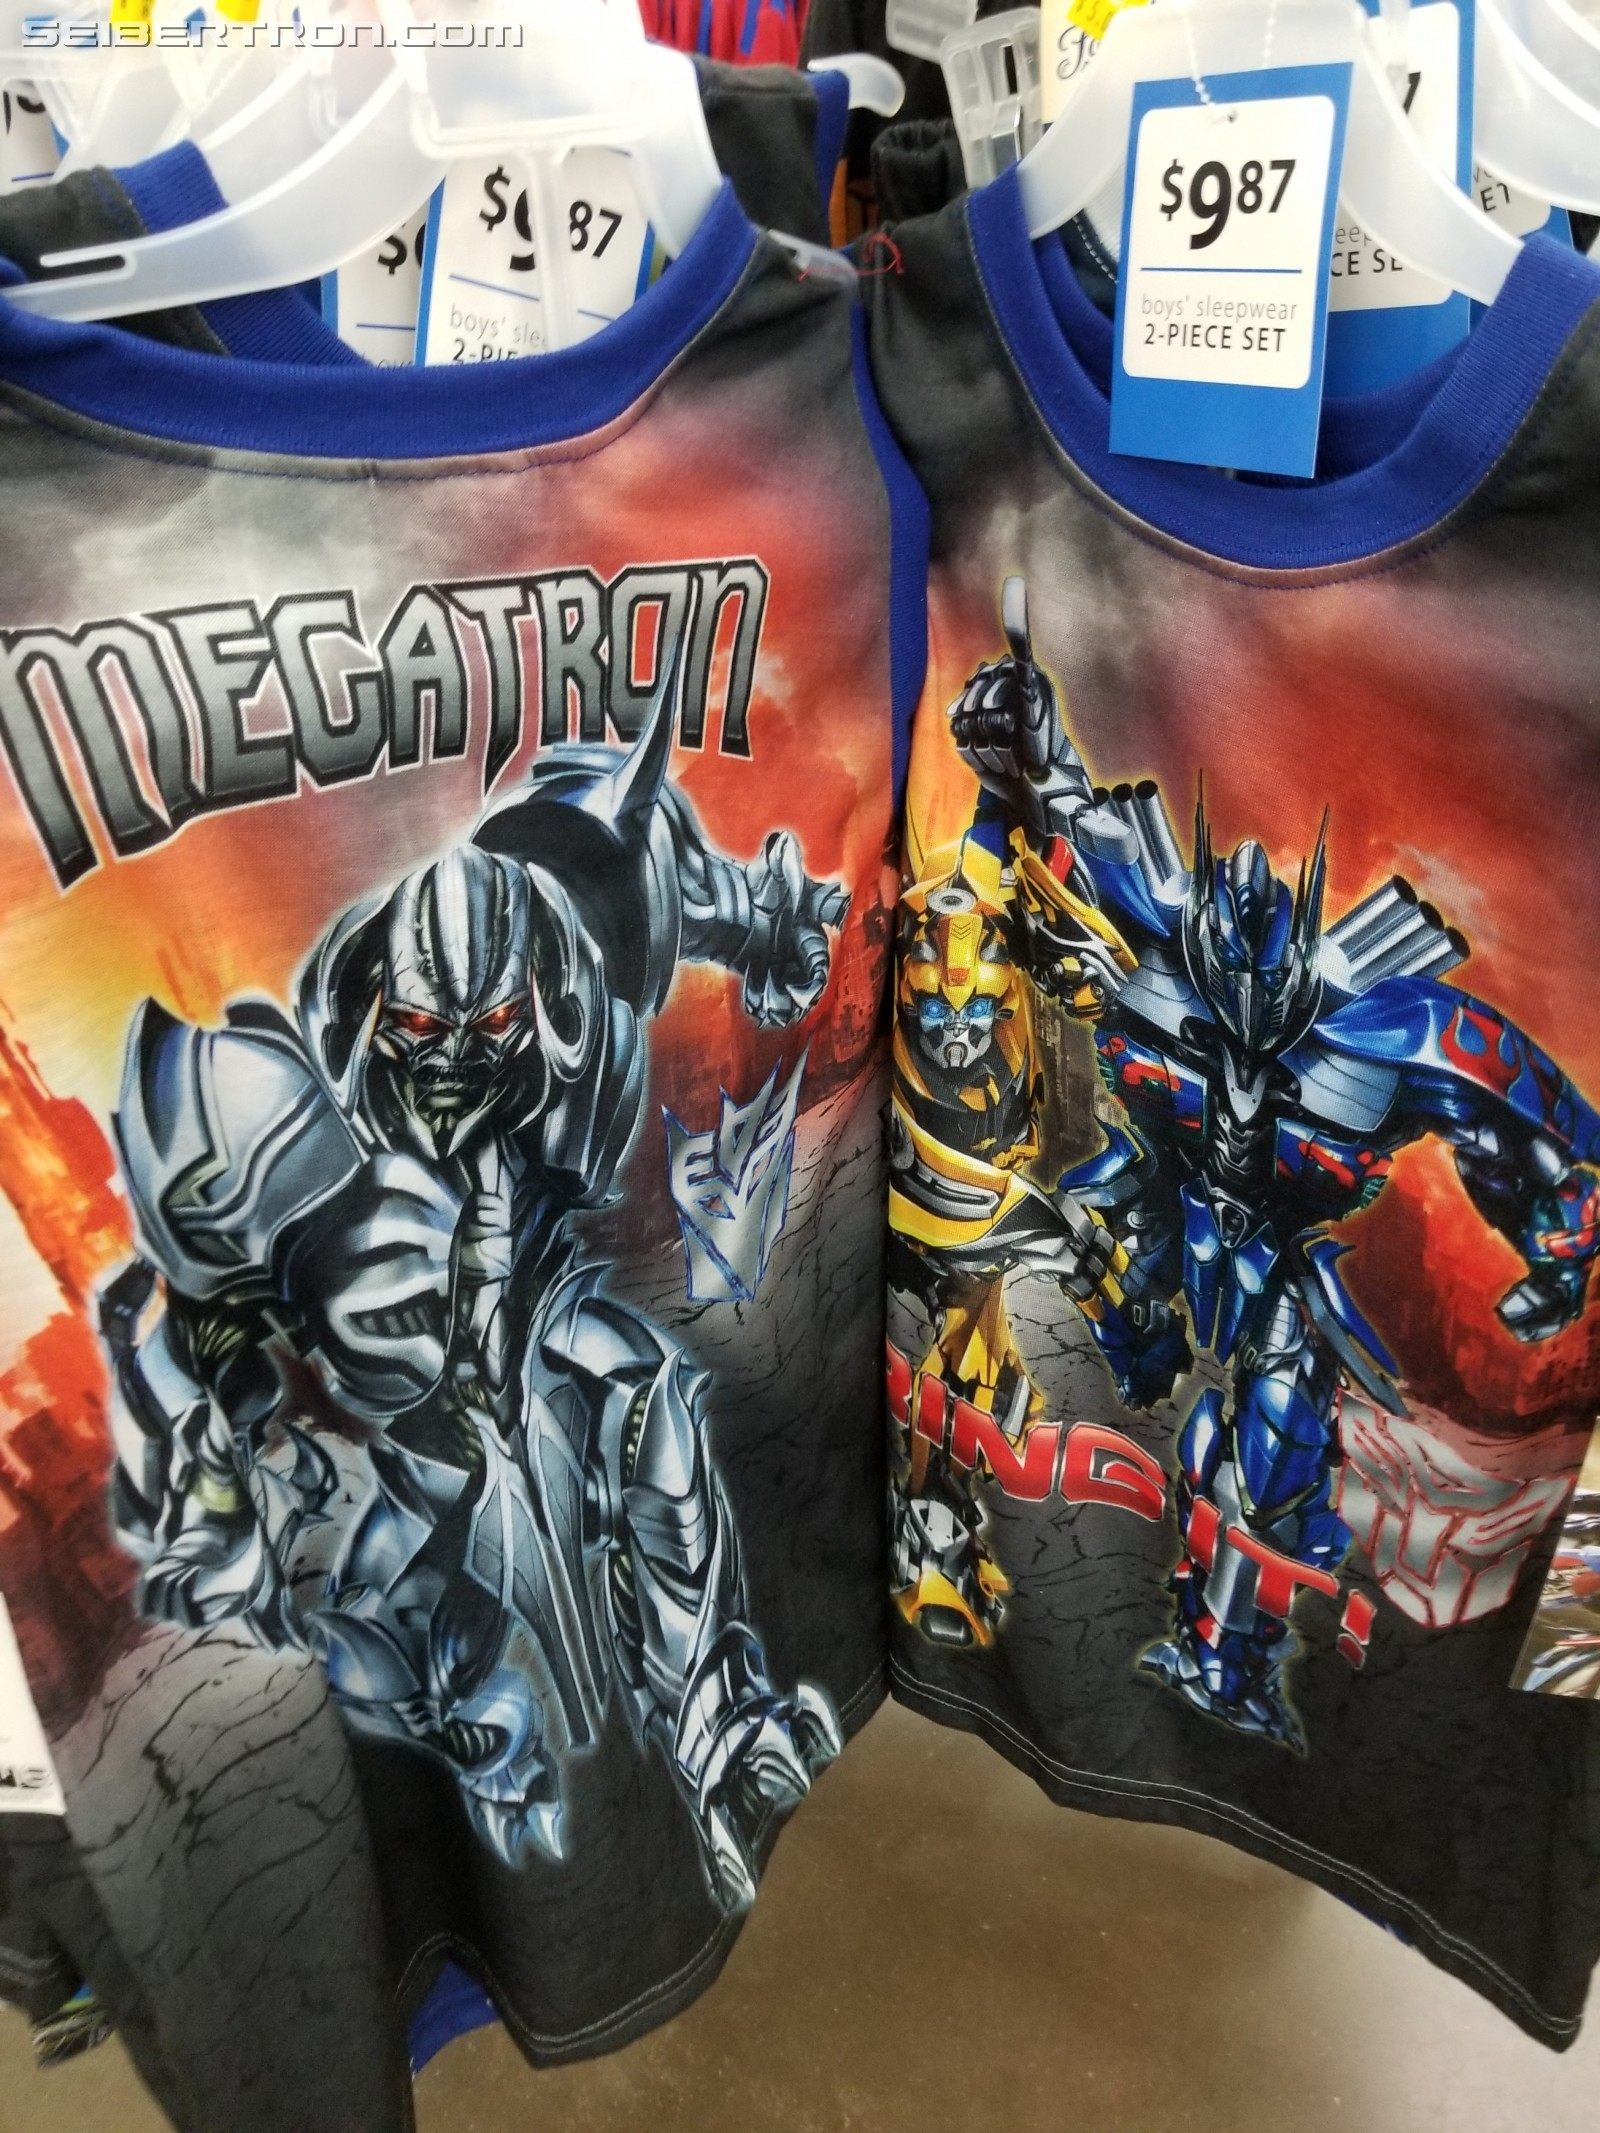 Transformers News: Re: Transformers: The Last Knight Non-Toy Products Discussion Thread